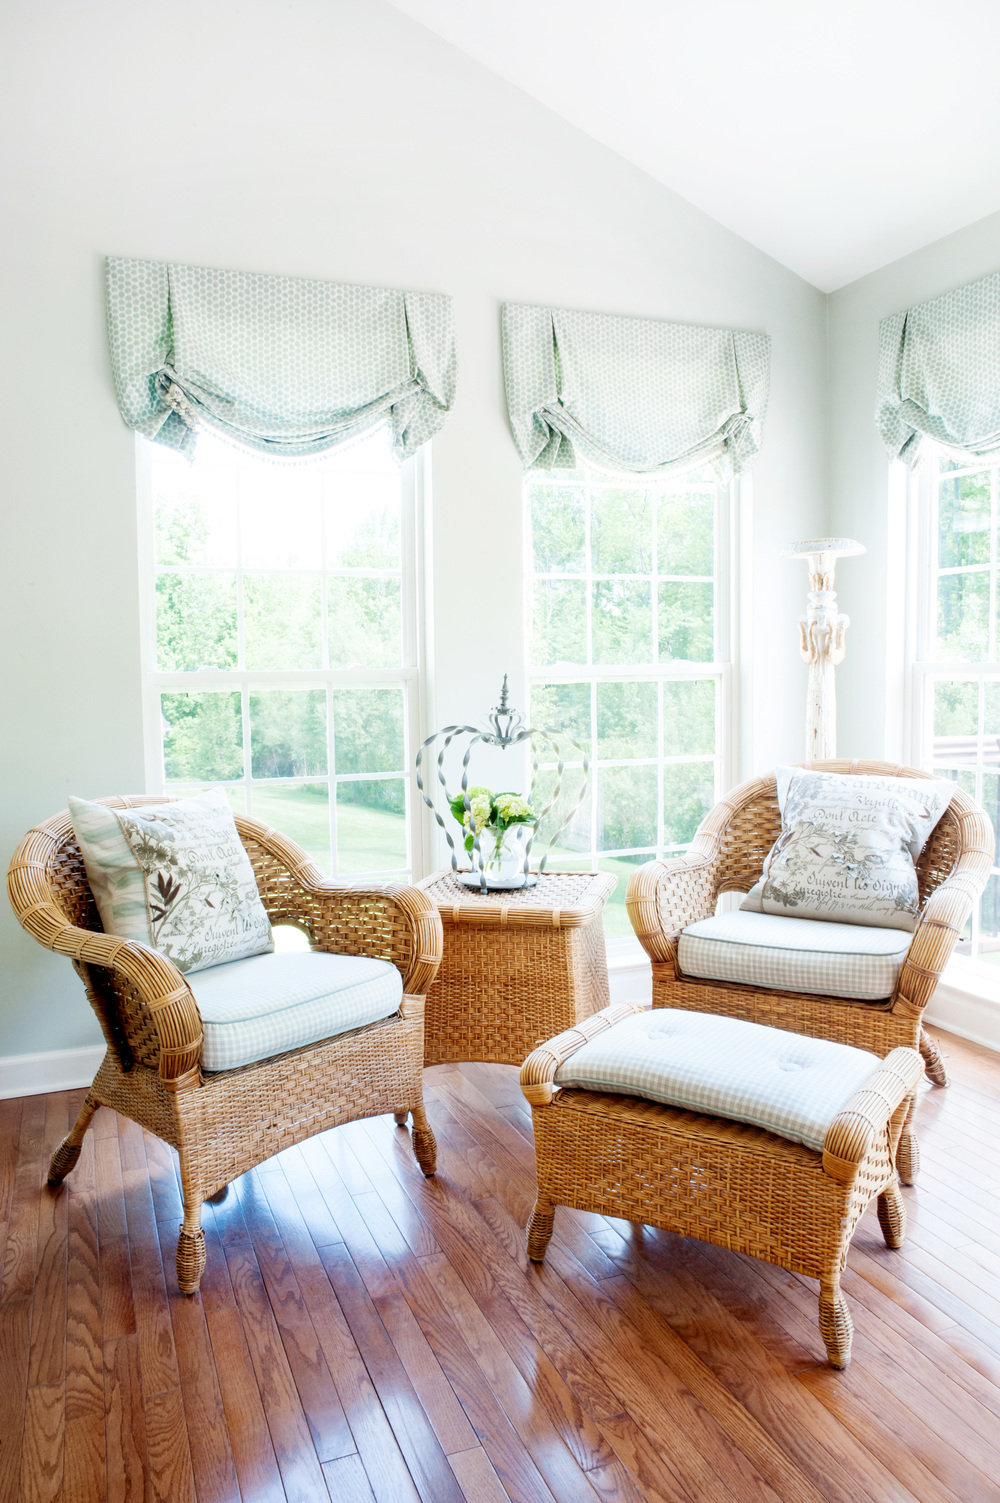 window_treatments_and_wicker_furniture